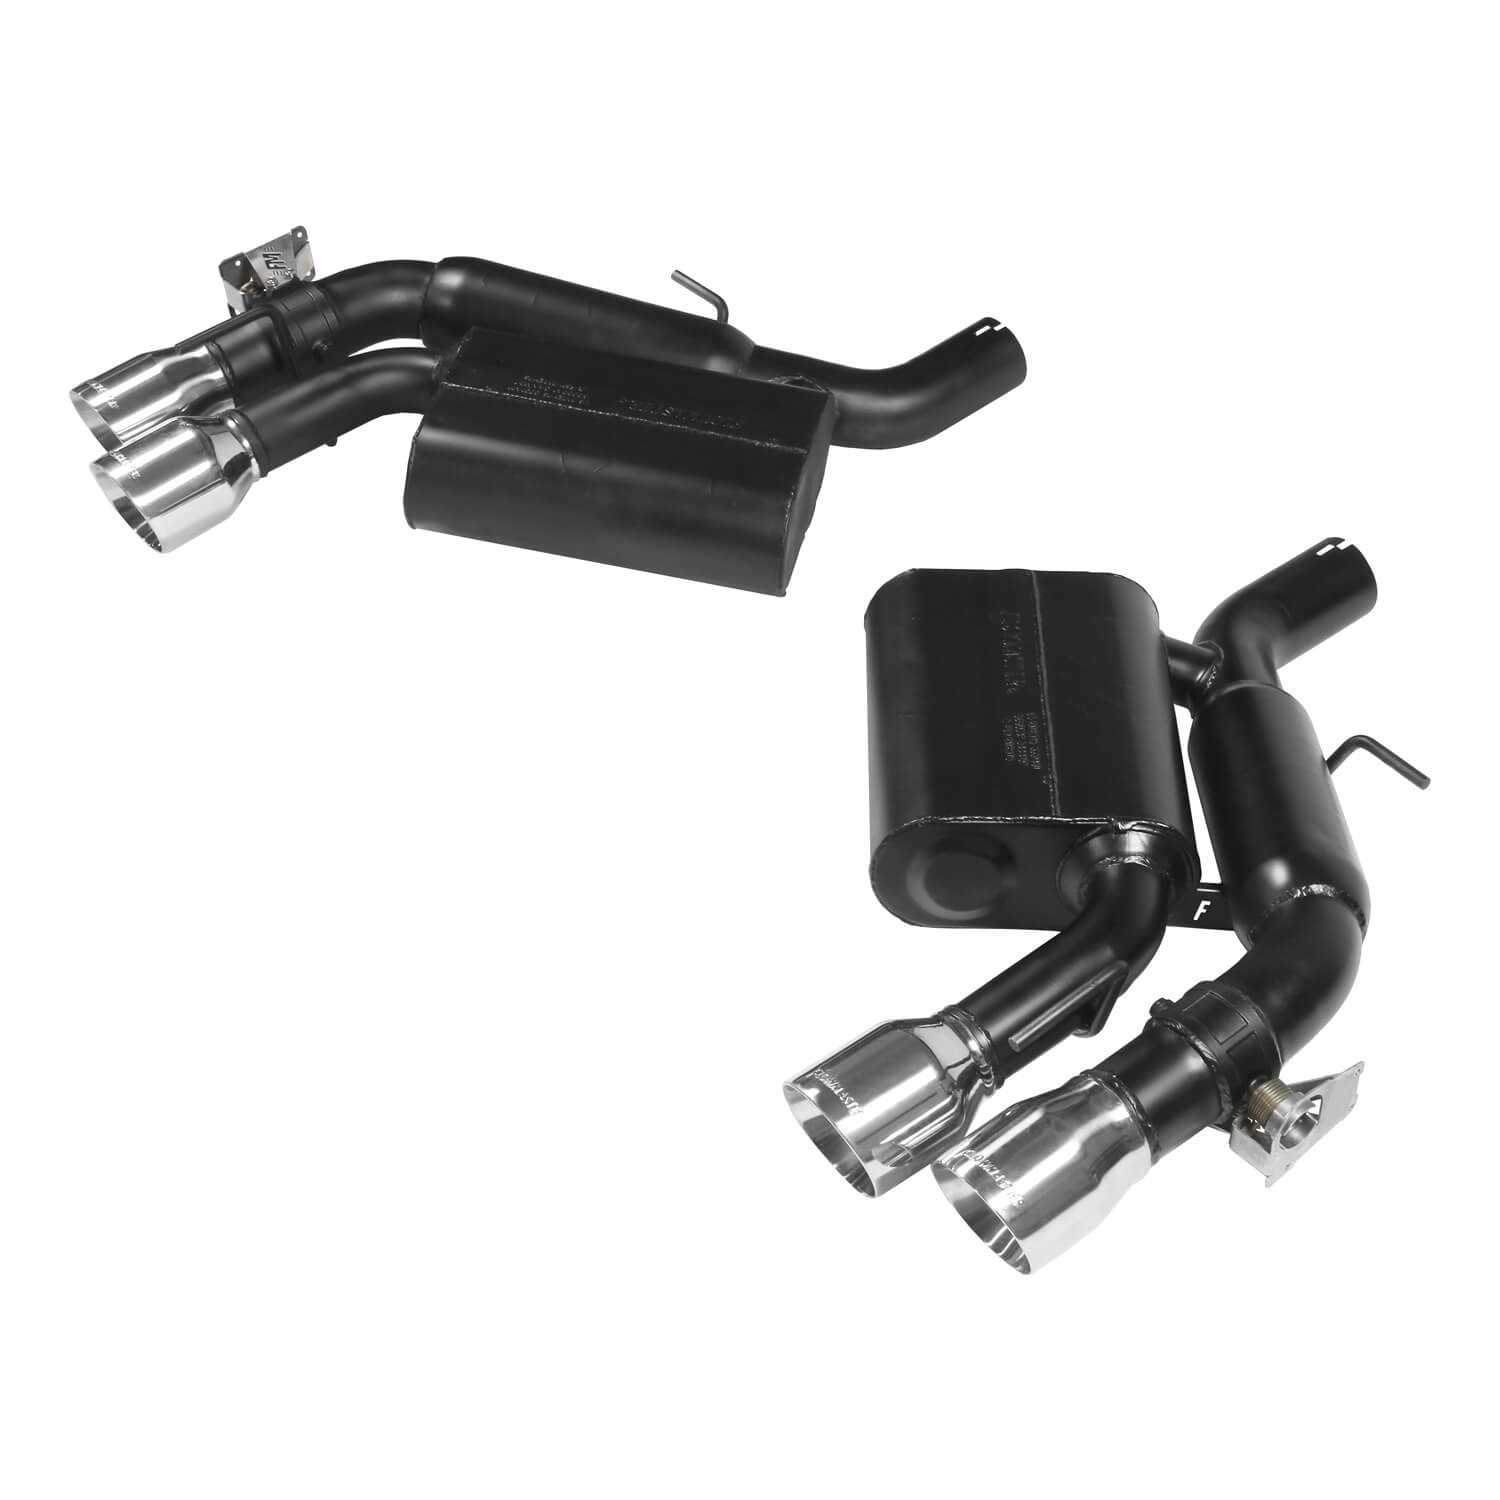 817746 Flowmaster American Thunder Axle Back Exhaust System